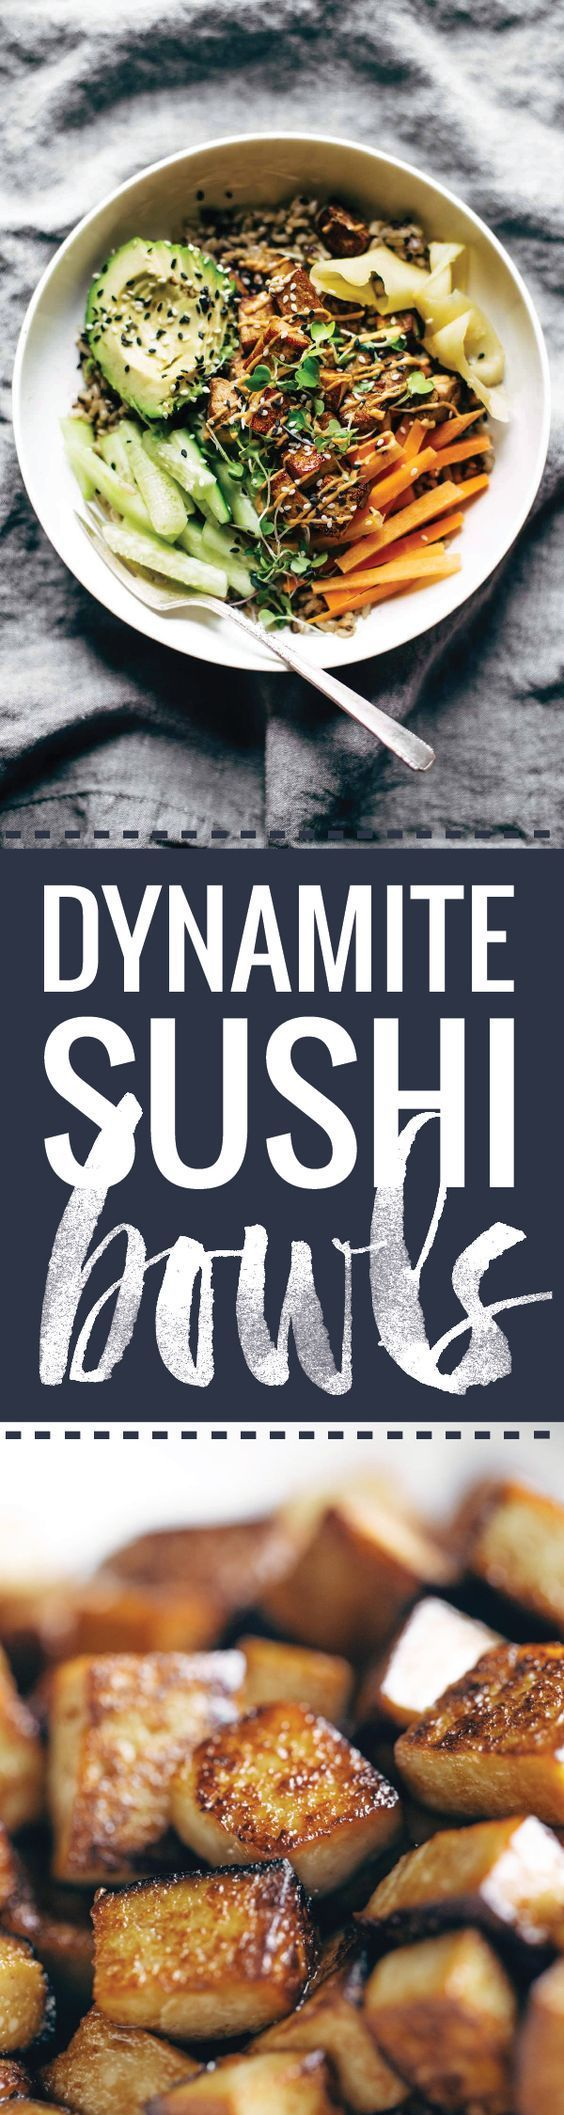 Dynamite Plant Power Sushi Bowls! just like a dynamite roll, but easier and healthier with tofu, avocado, cucumber, ginger, brown rice, and spicy mayo. Vegetarian or easily made vegan. | Pinch of Yum